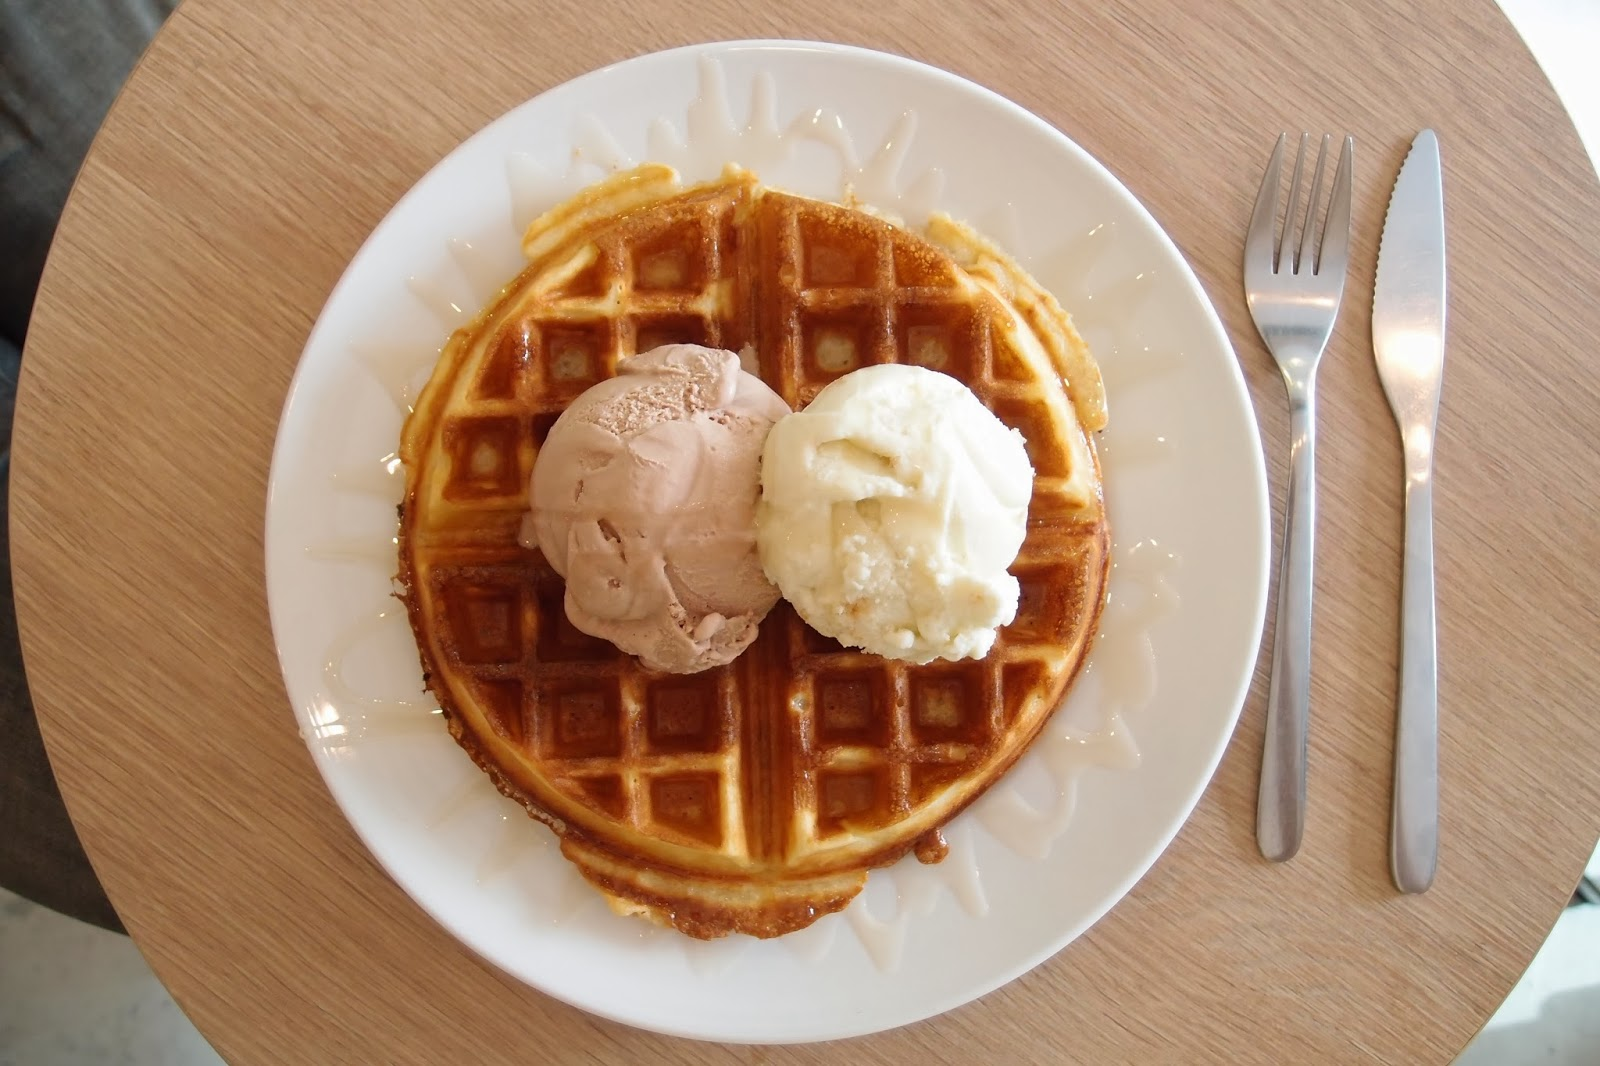 Waffles in East of Singapore